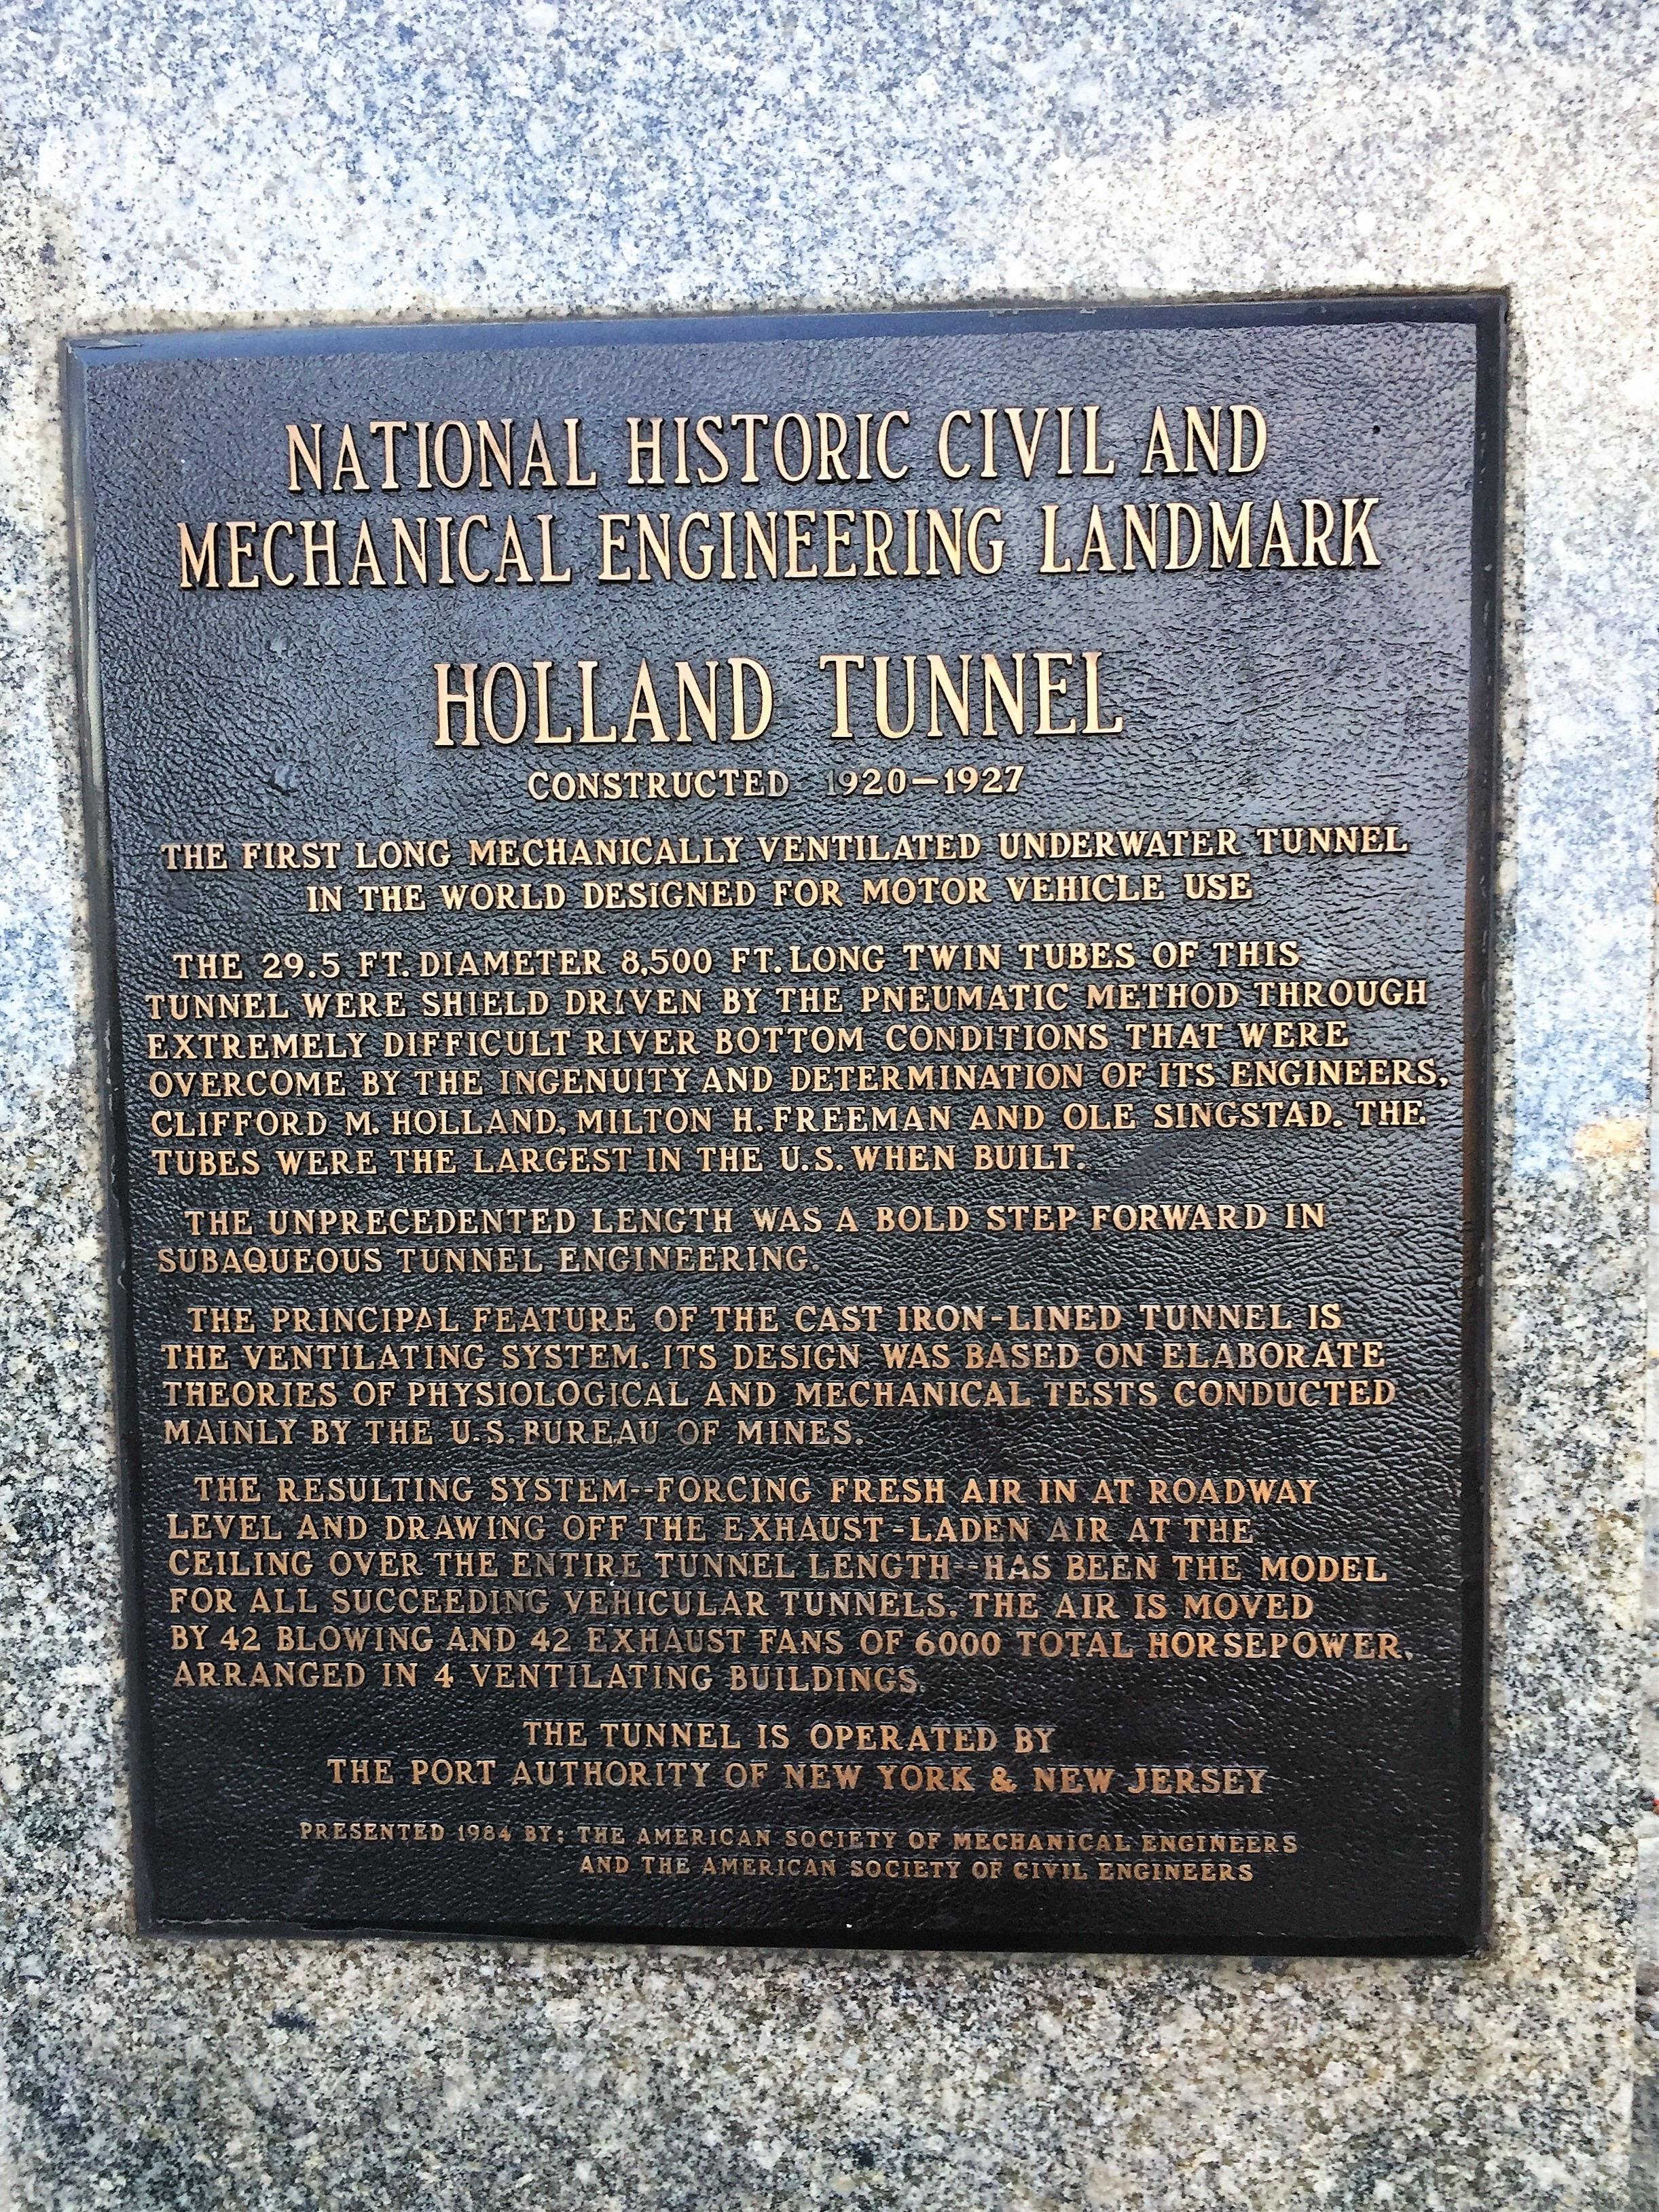 Did you know that New York City's Holland Tunnel is a National Historic Landmark? Photo credit: L. Tripoli